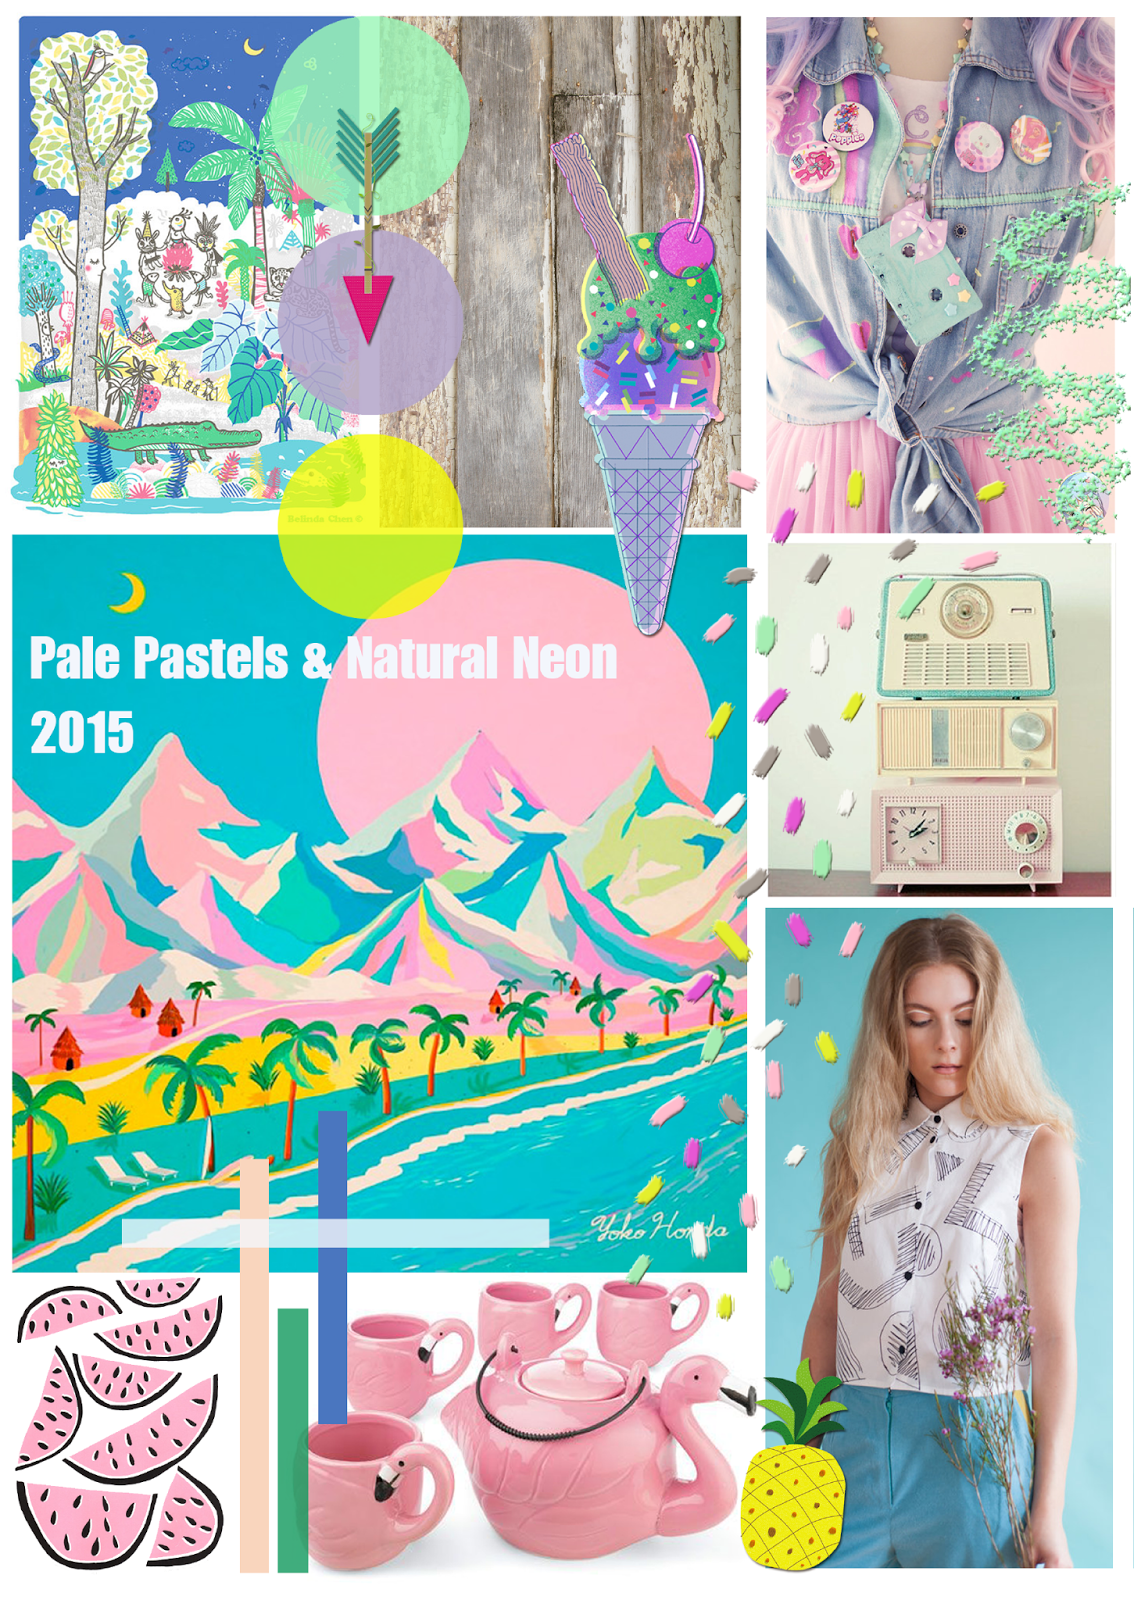 Ma Bicyclette: What's Hot In The World Of Design Spring-Summer 2015 | Pale Pastels & Neutral Neon Trend - Images from top to bottom, left to right - Bels Art World / Philip Dennis / Yoko Honda / Cassia Beck / Loela / Mengsel  Stylesheet by Stephanie Bertenshaw from Felt Mountain Studios for Ma Bicyclette